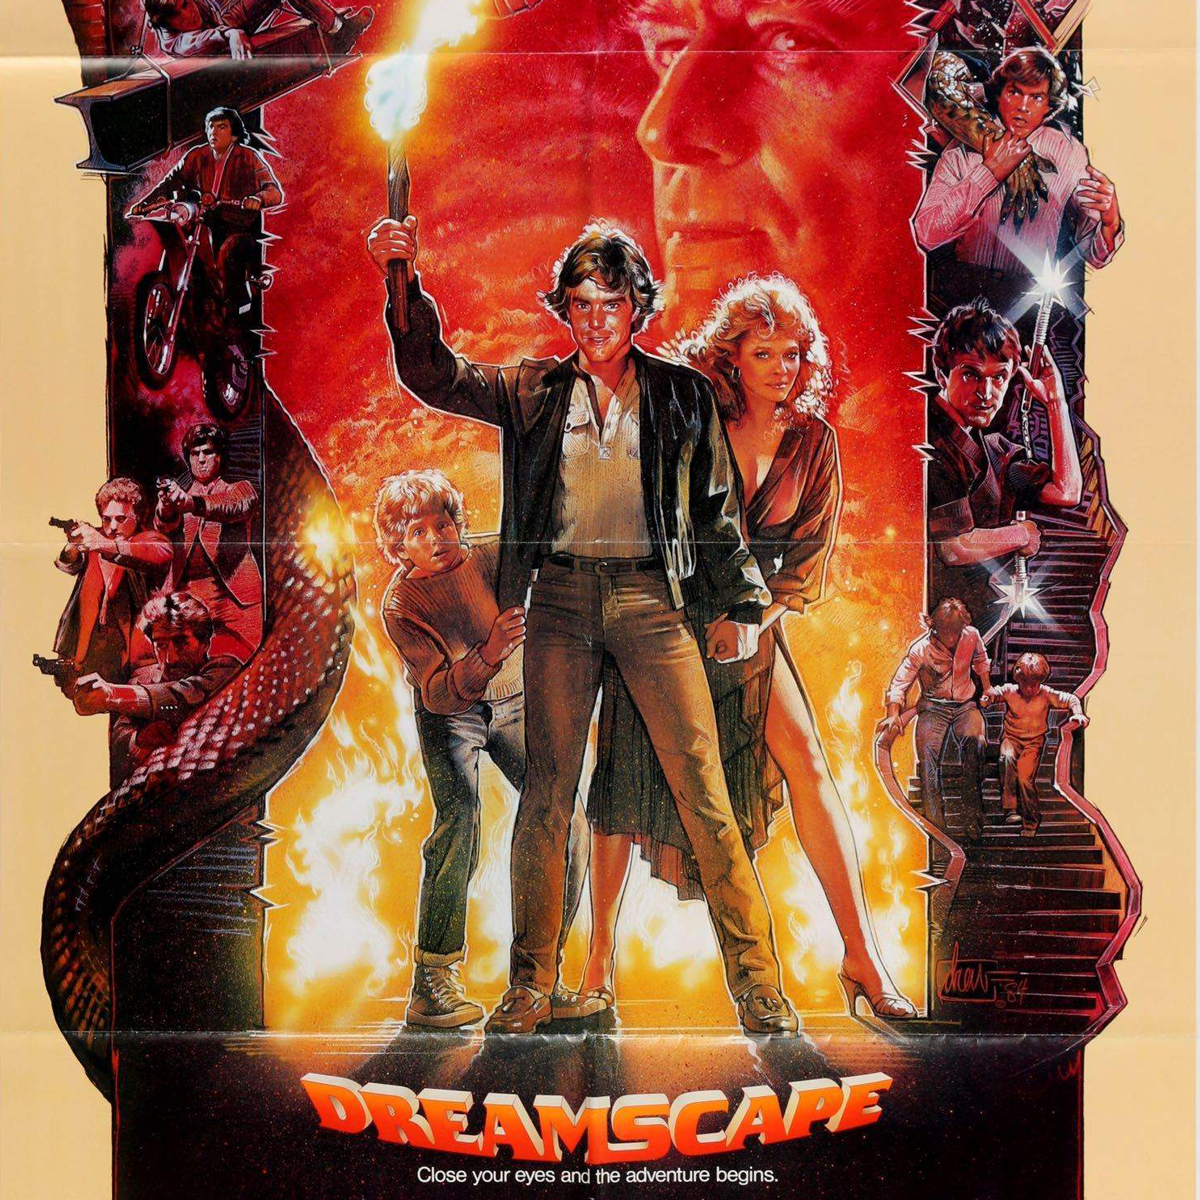 ISTYA Dreamscape 1984 review